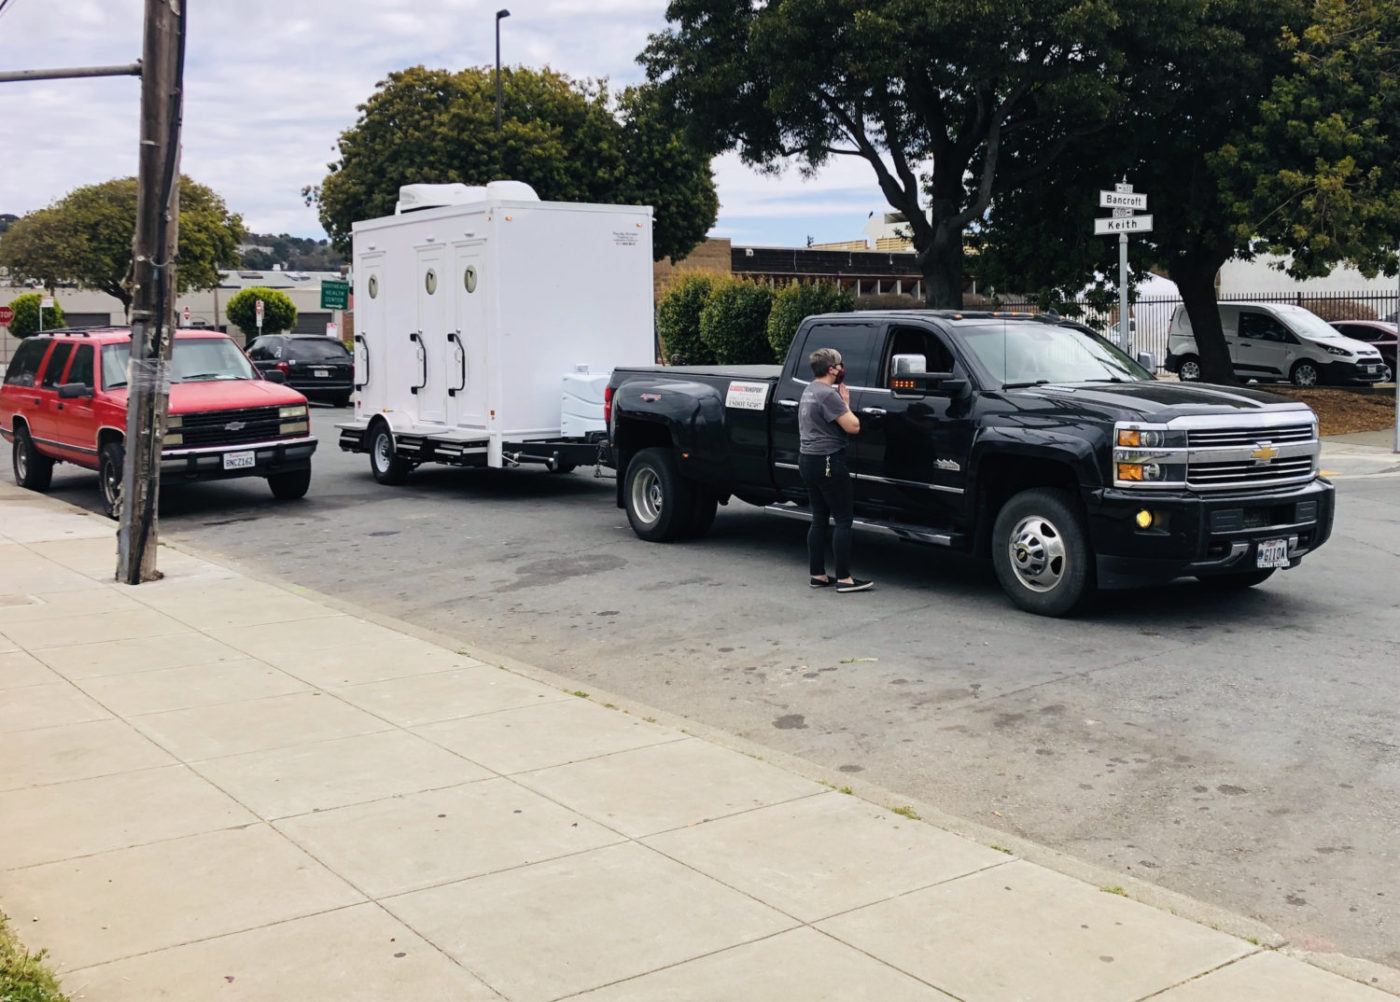 Beds-4-Bayview-showers-arrive-at-MLK-Park-1400x1002, Community seizes MLK Park as immediate COVID relief for unhoused neighbors, Local News & Views